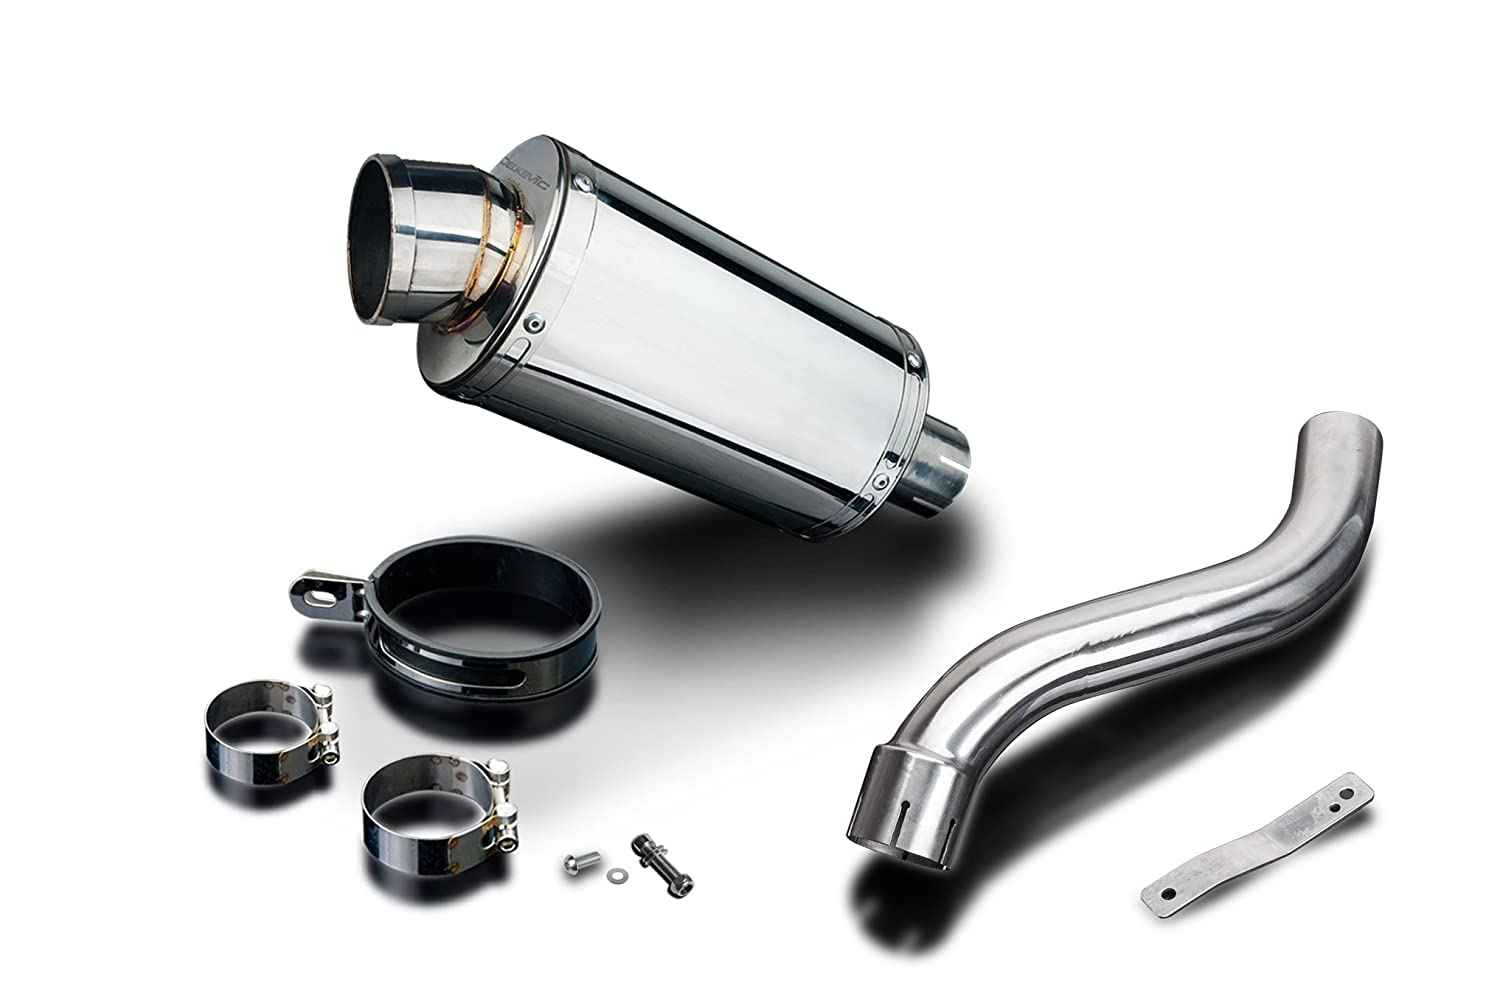 Delkevic Aftermarket Slip On compatible with Suzuki SV650 High Level SS70 9 Stainless Steel Oval Muffler Exhaust 98-02